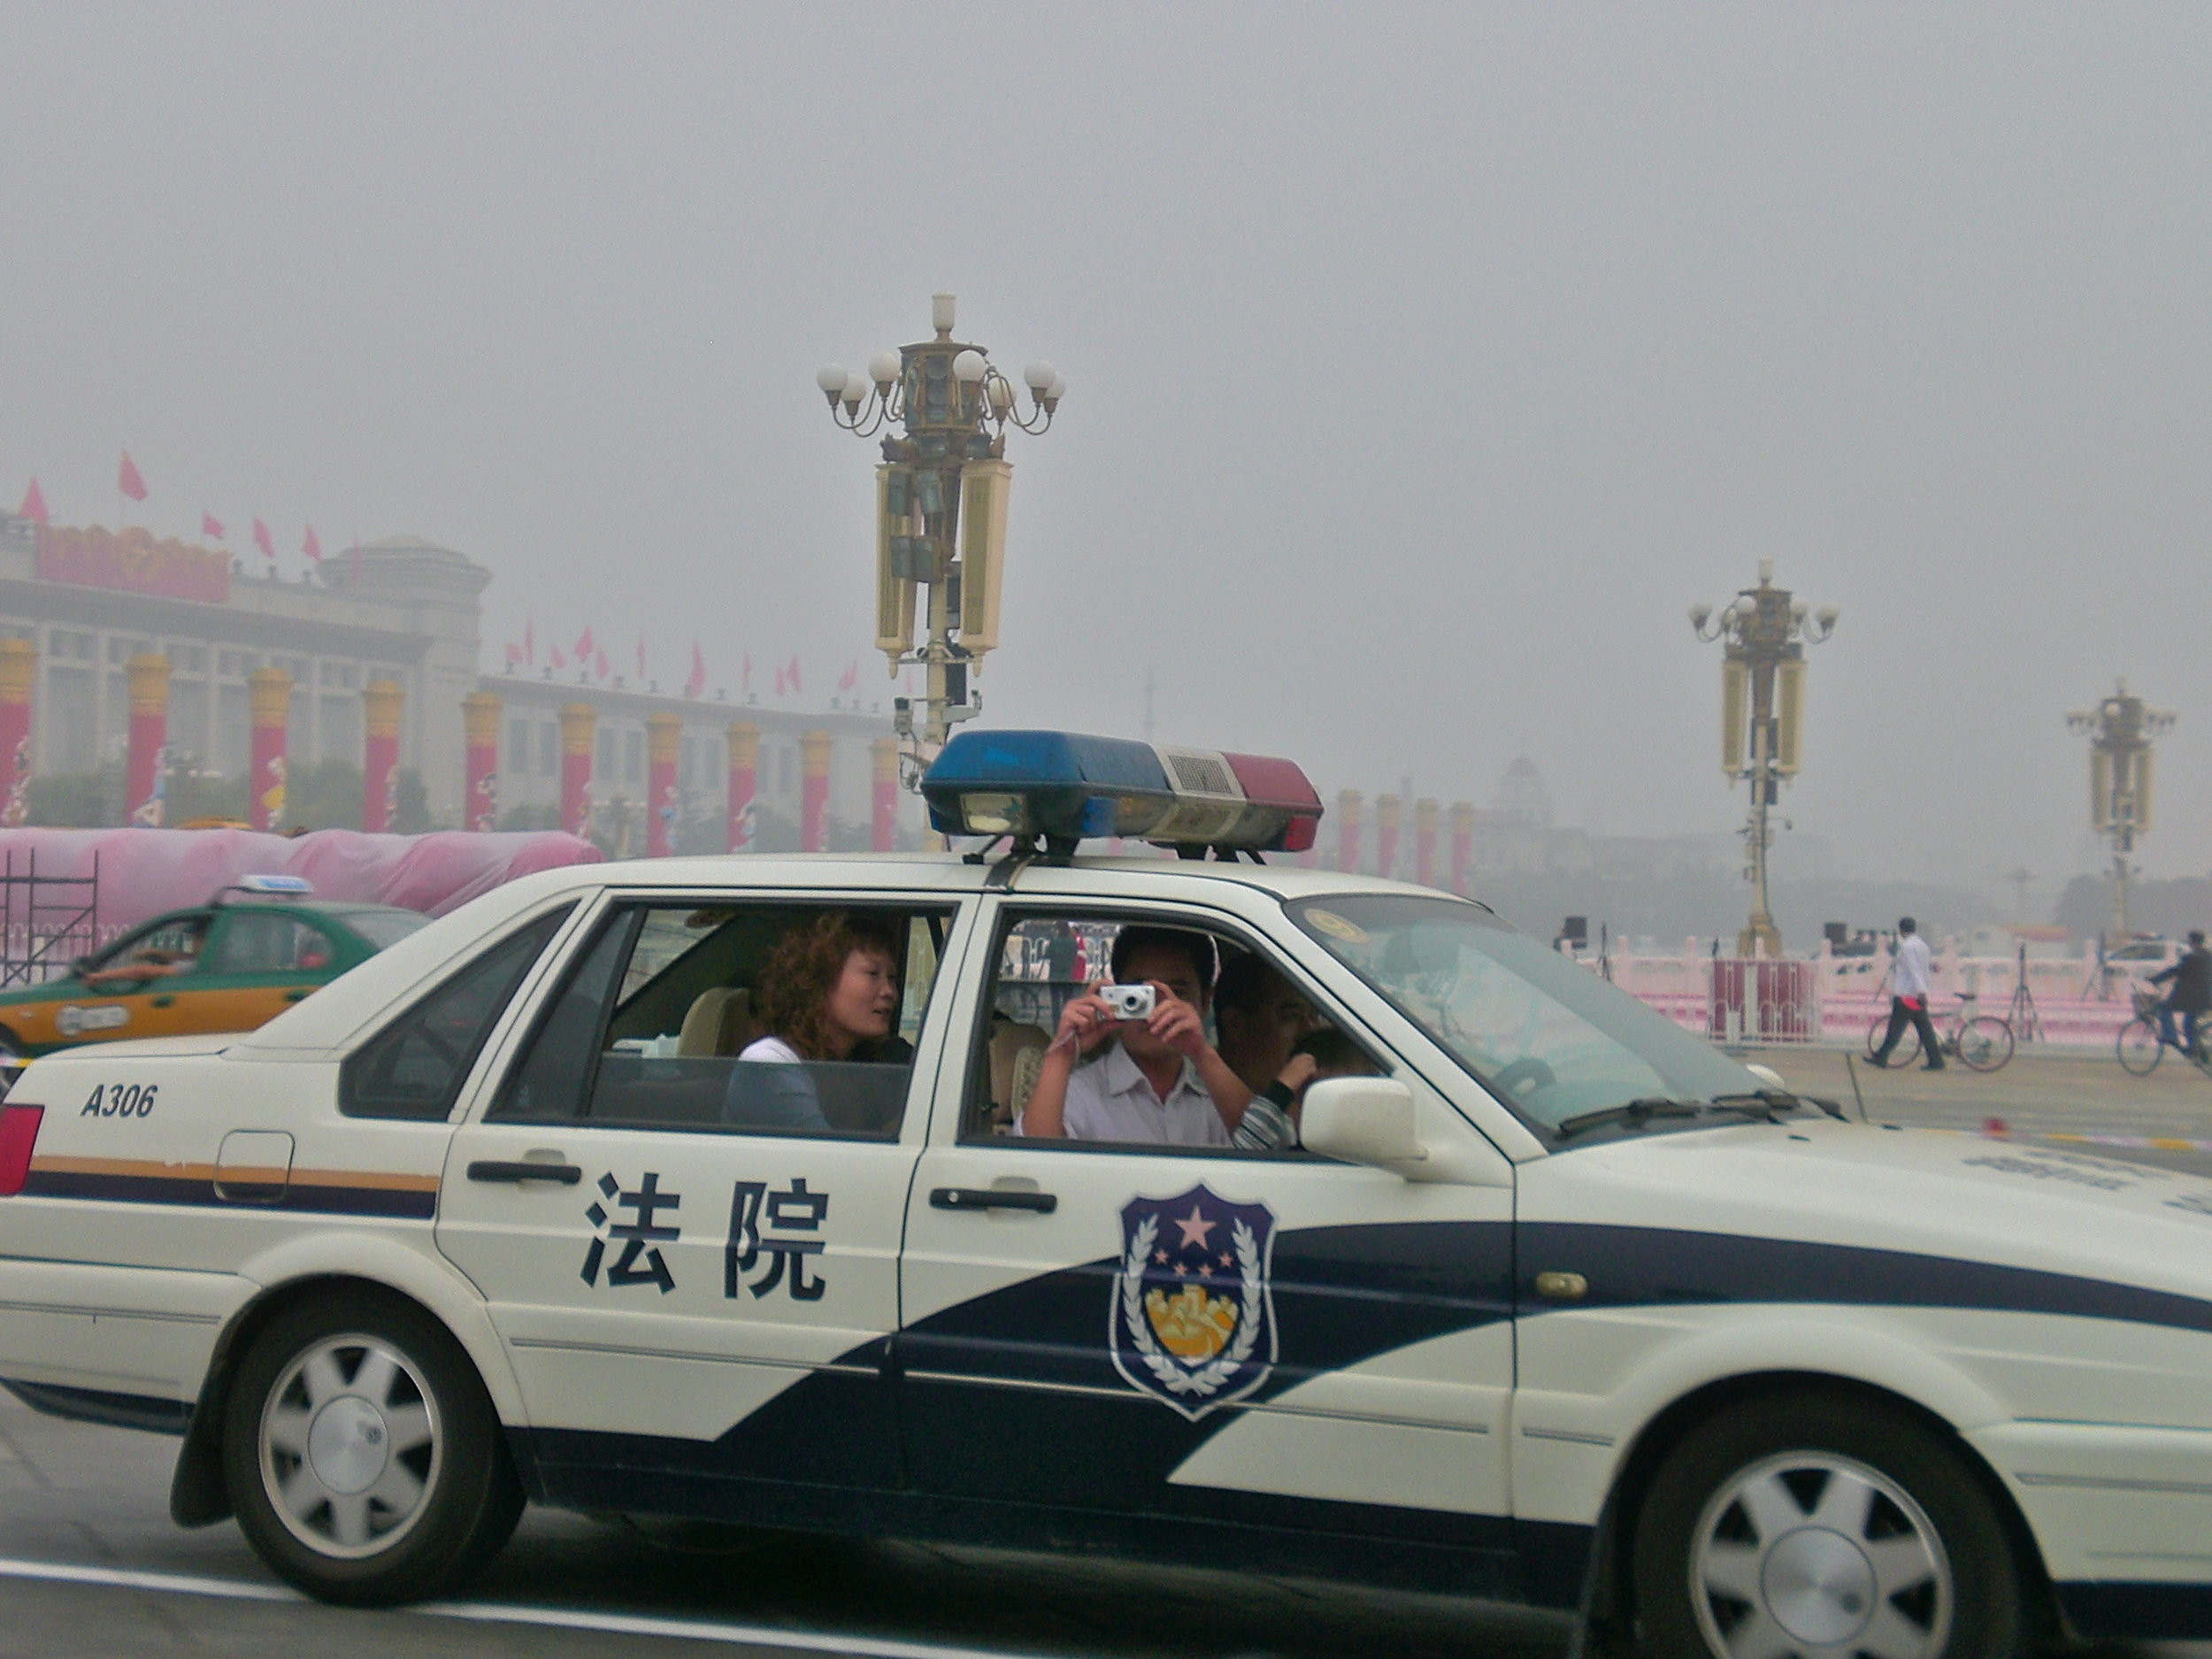 A police man taking photos from a patrol car on Tiananmen Square, Beijing, China. Photo: (C) Remko Tanis